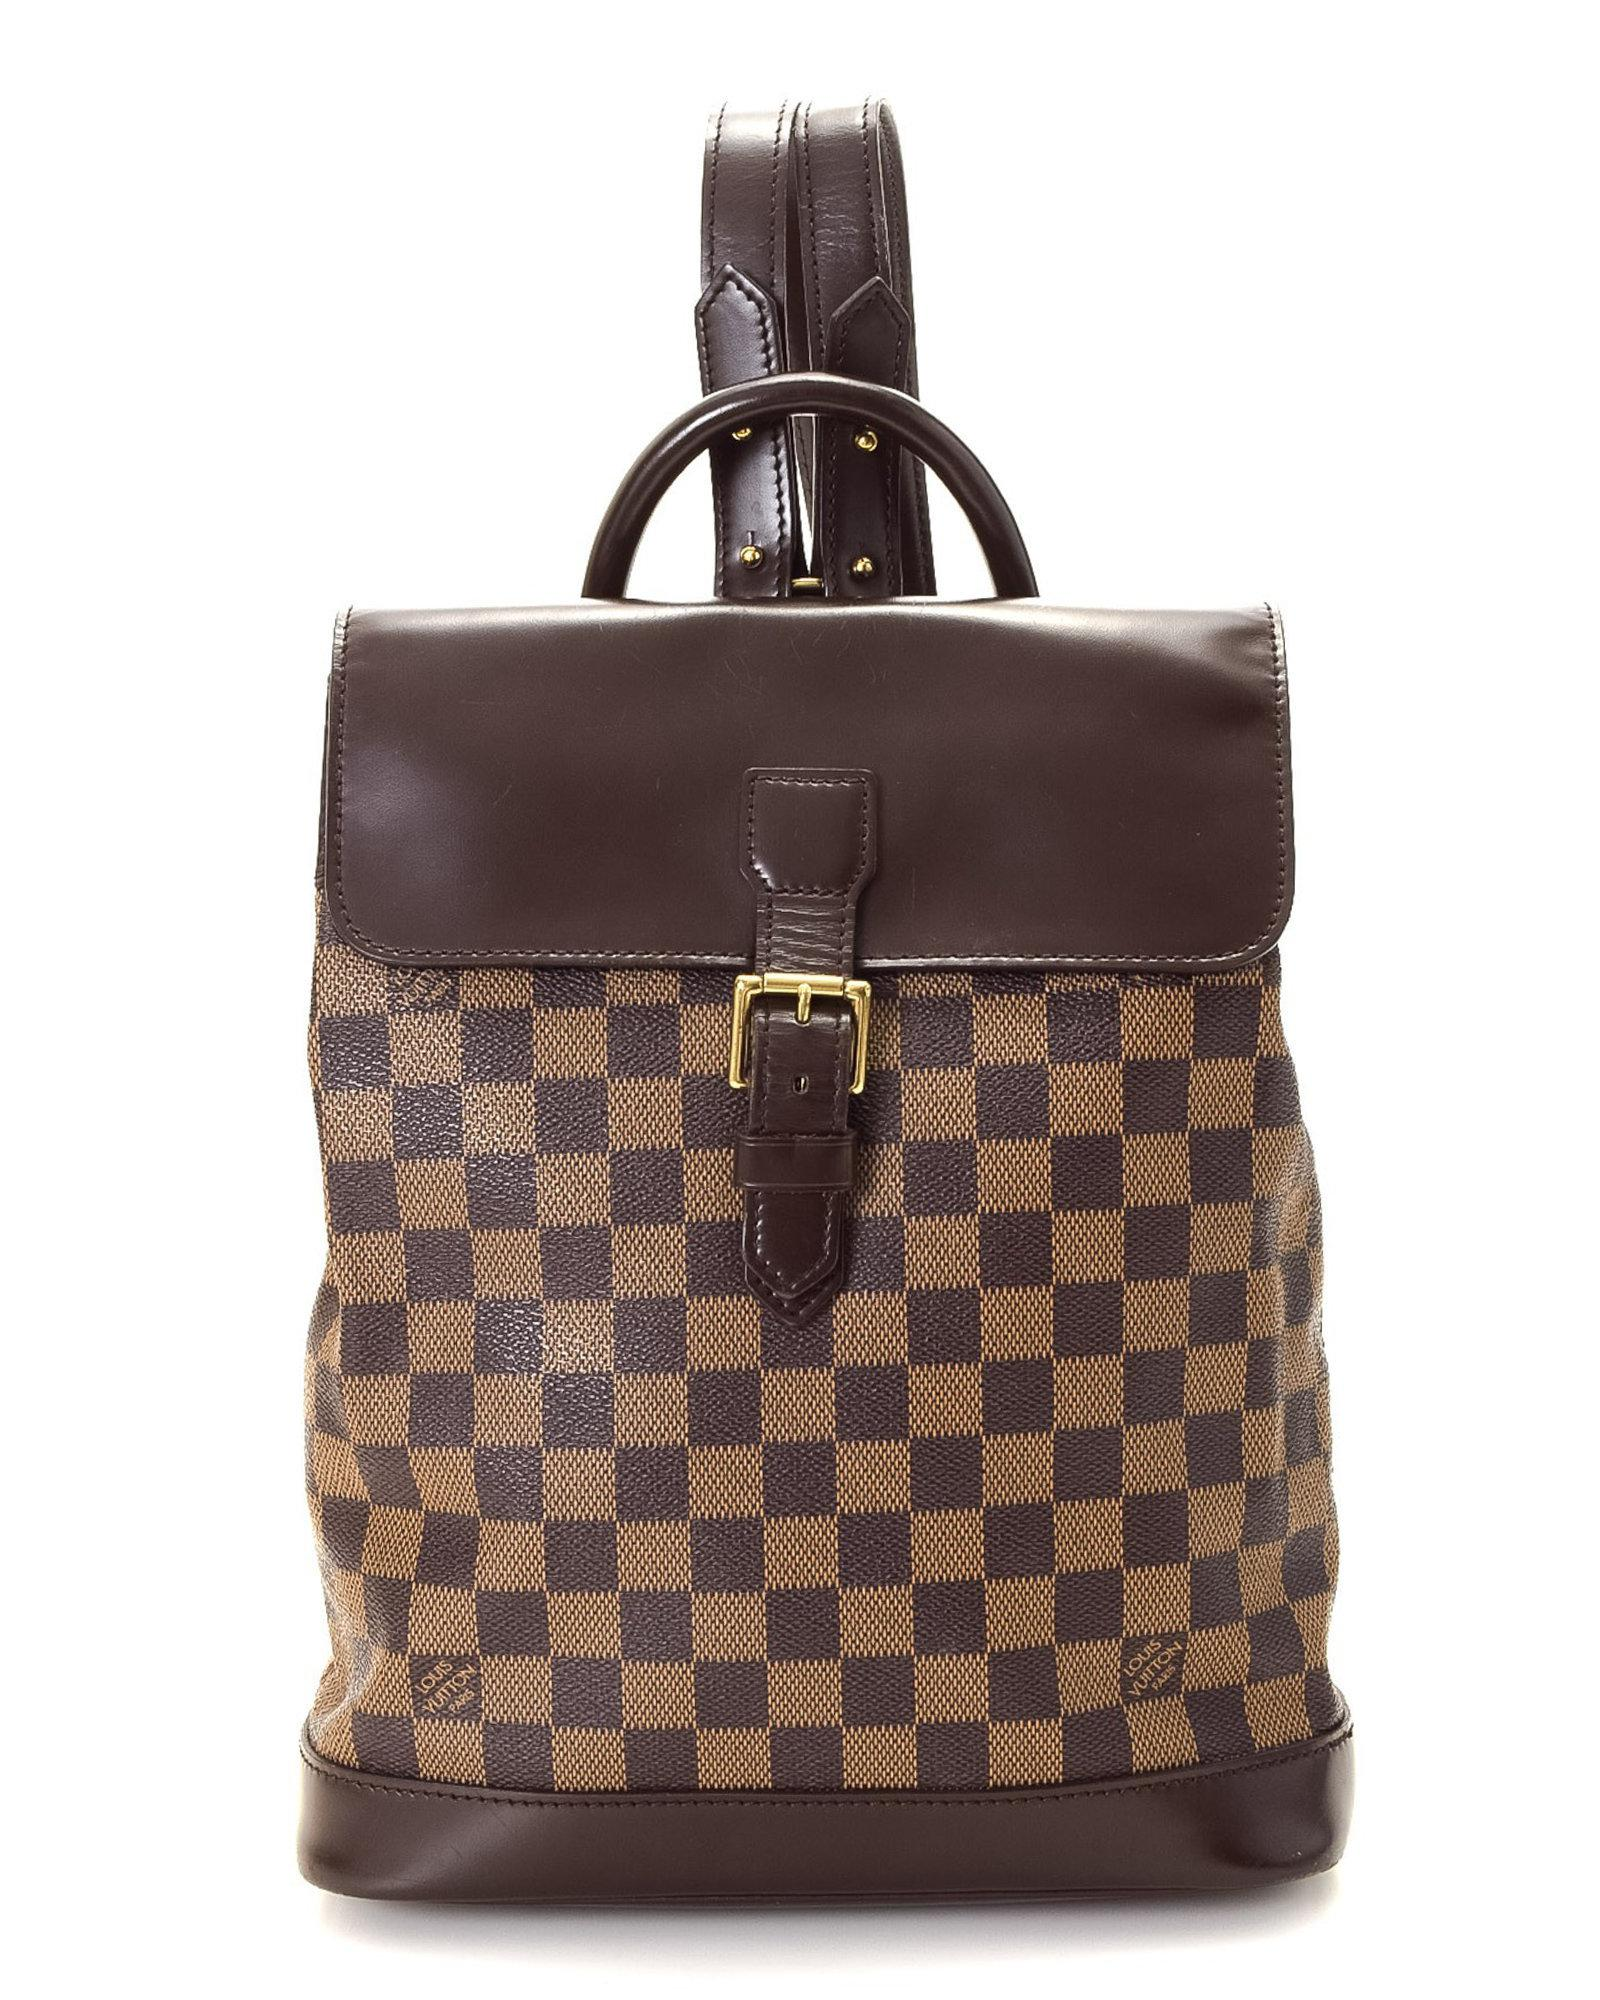 d9e39a9e9253 Lyst - Louis Vuitton Damier Ebene Soho Backpack - Vintage in Brown